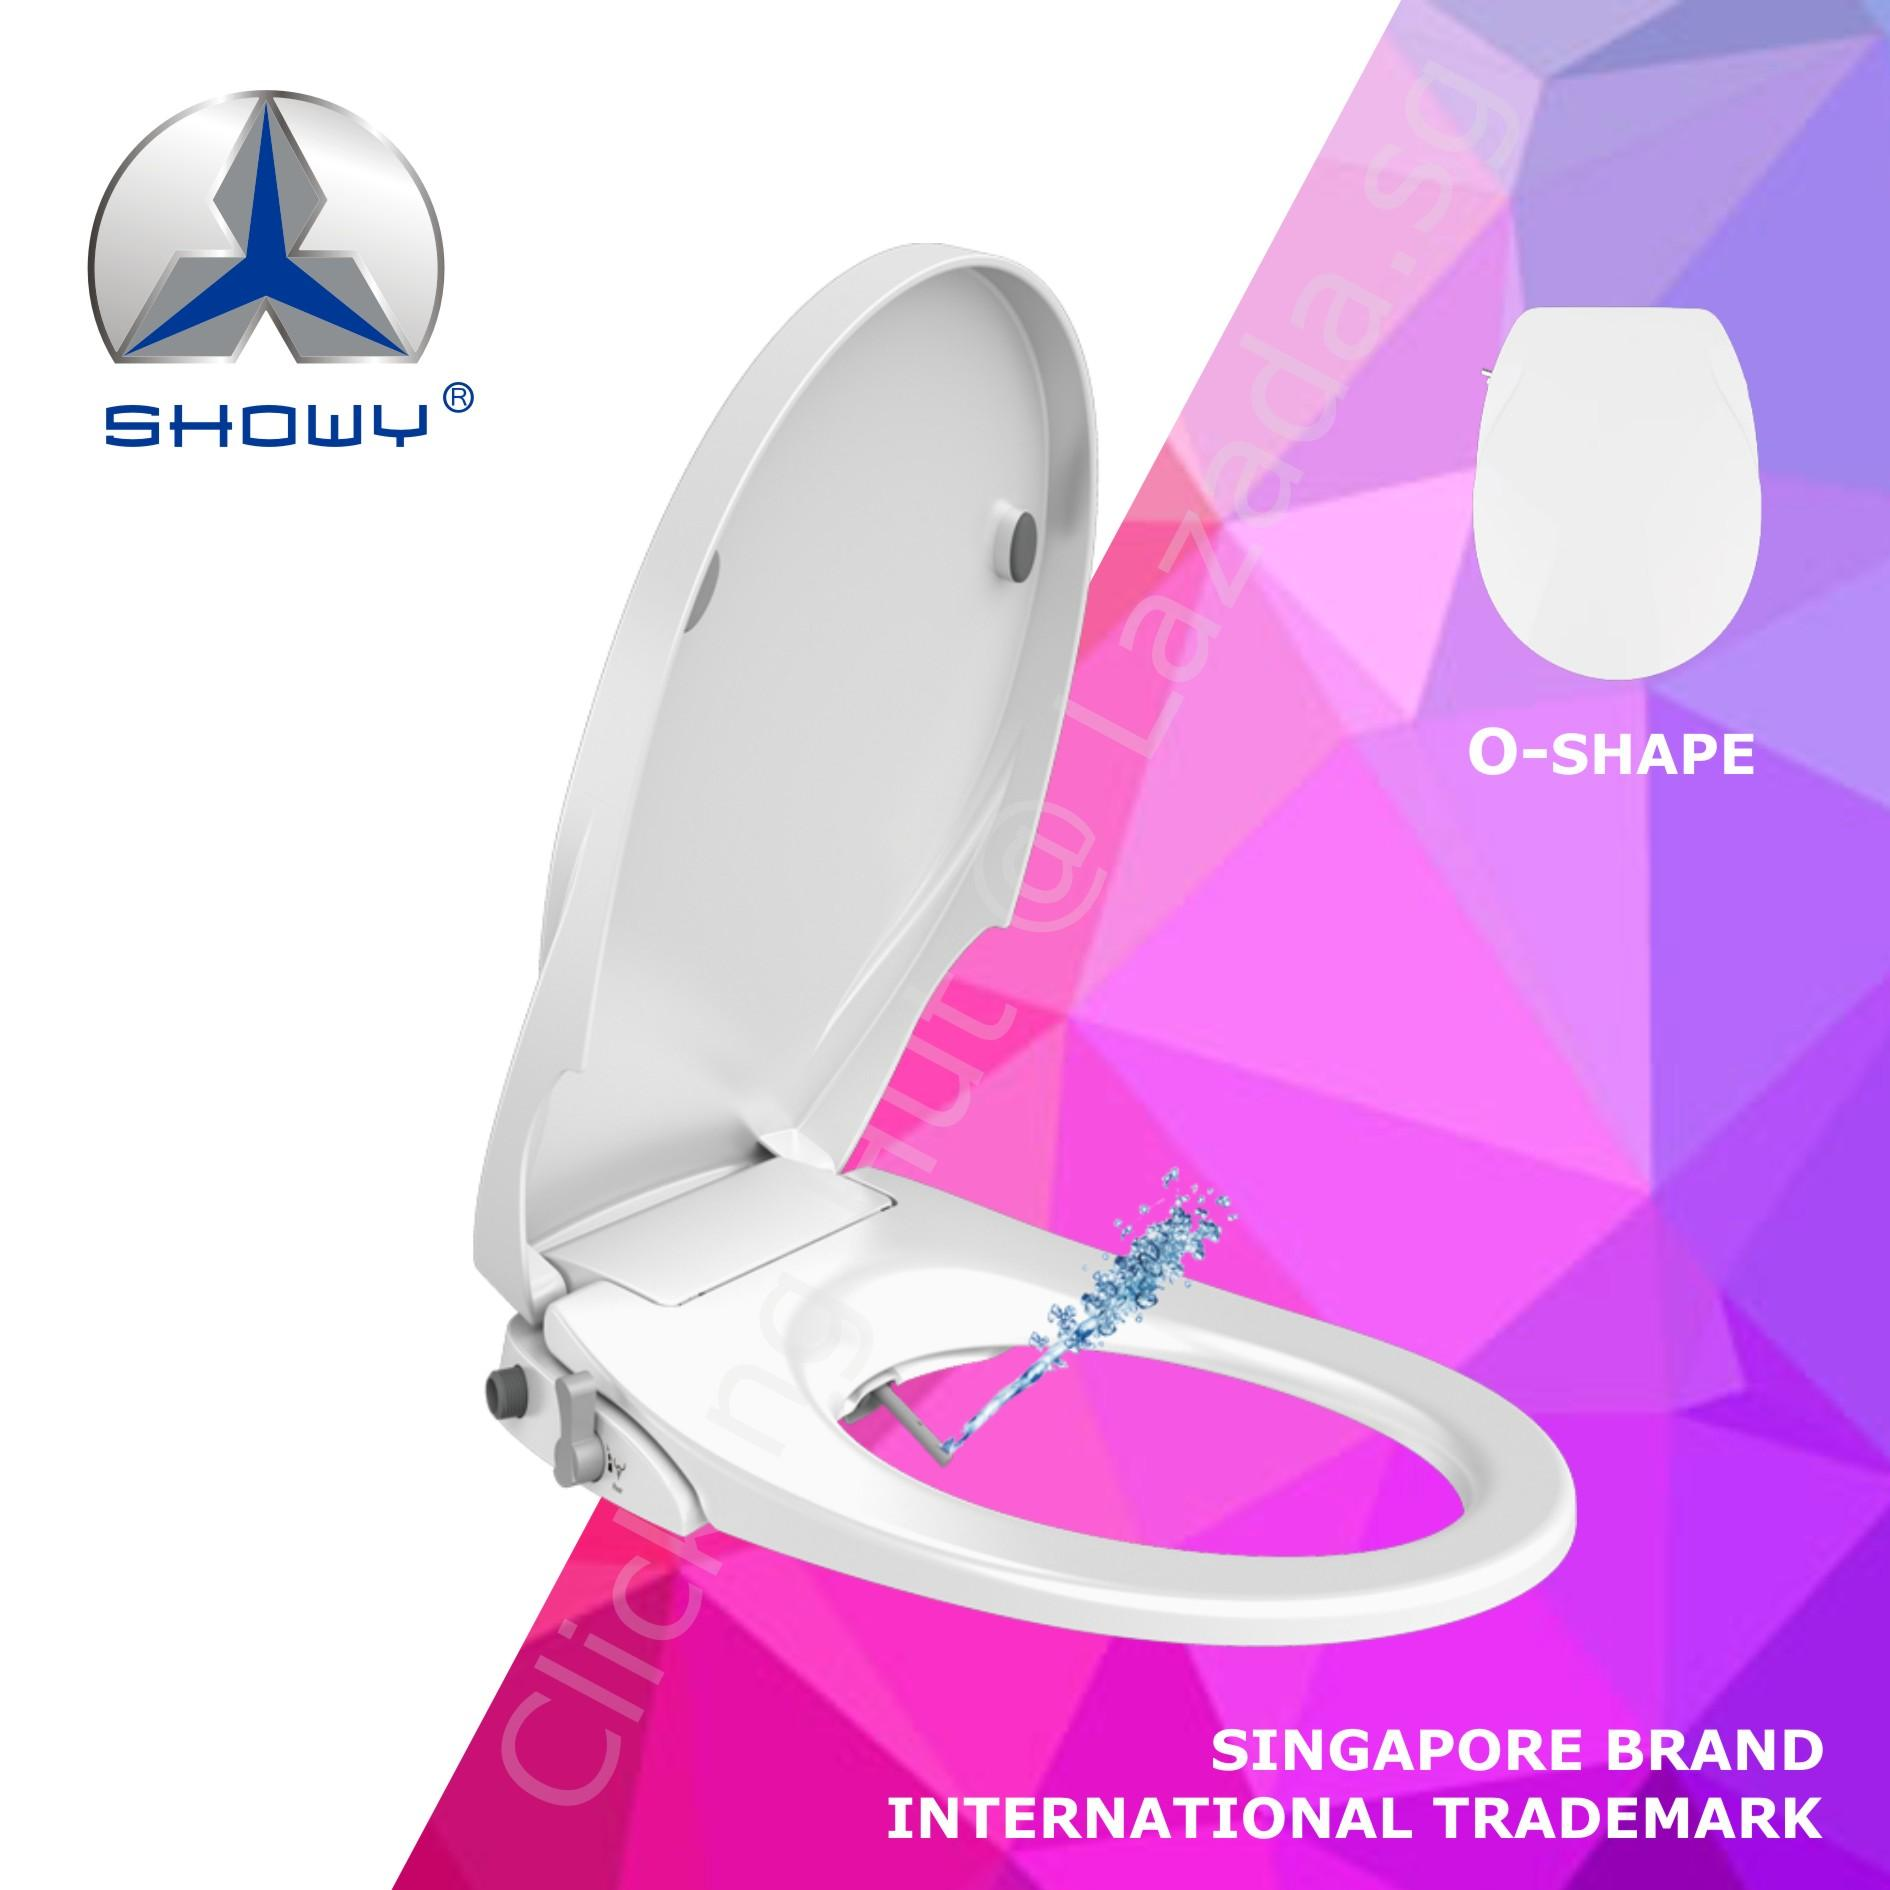 Showy Bidet Toilet Seat - Non-Electric/manual Control (a Singapore Brand) By Clicking Hut.